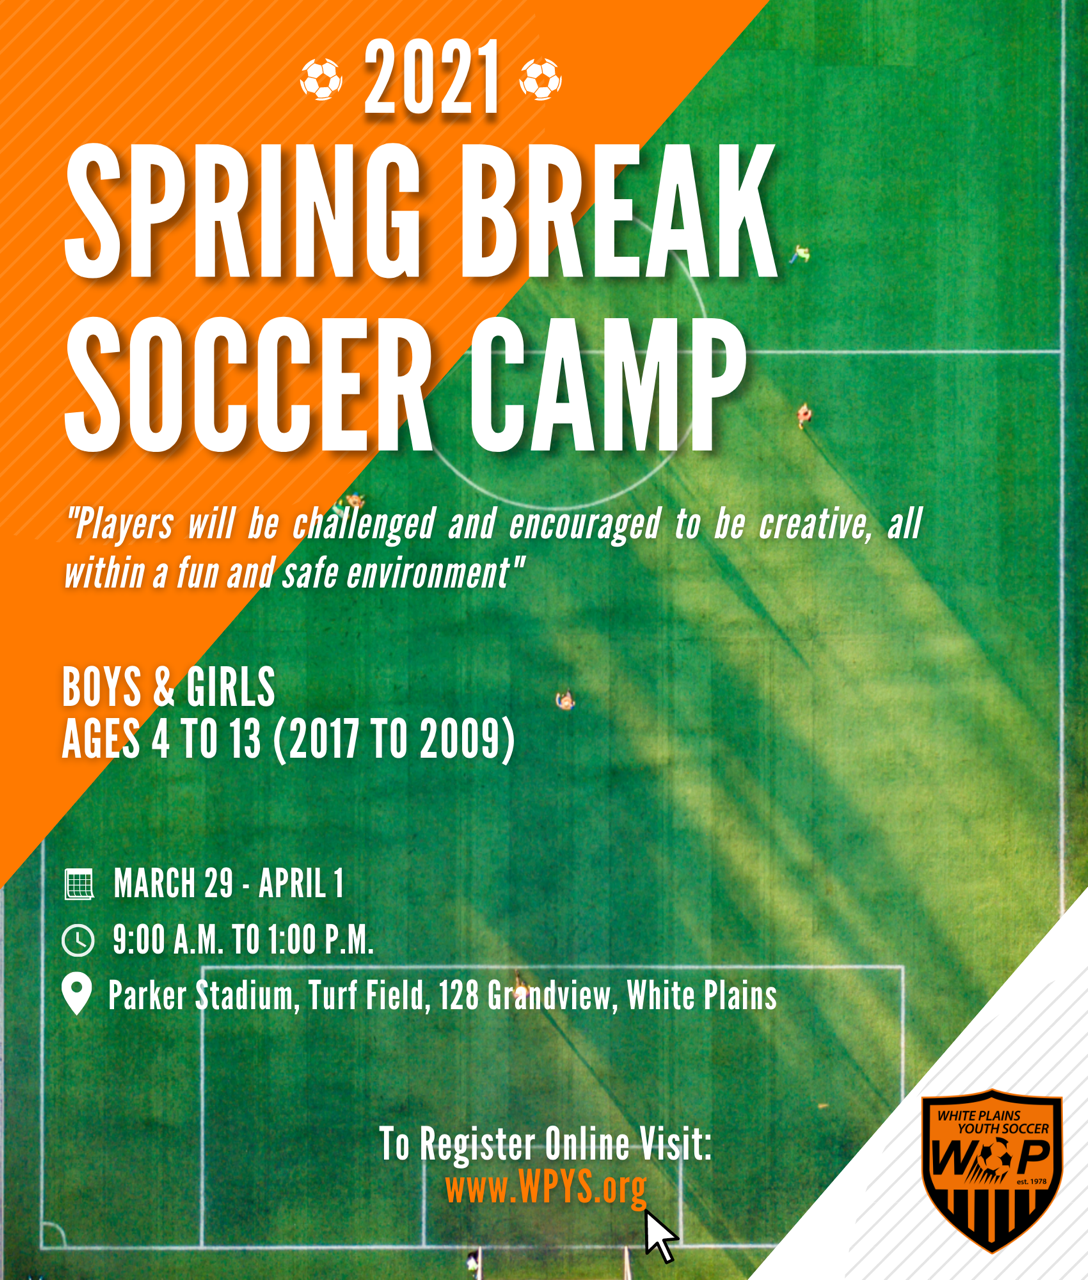 2021 SPRING BREAK CAMP